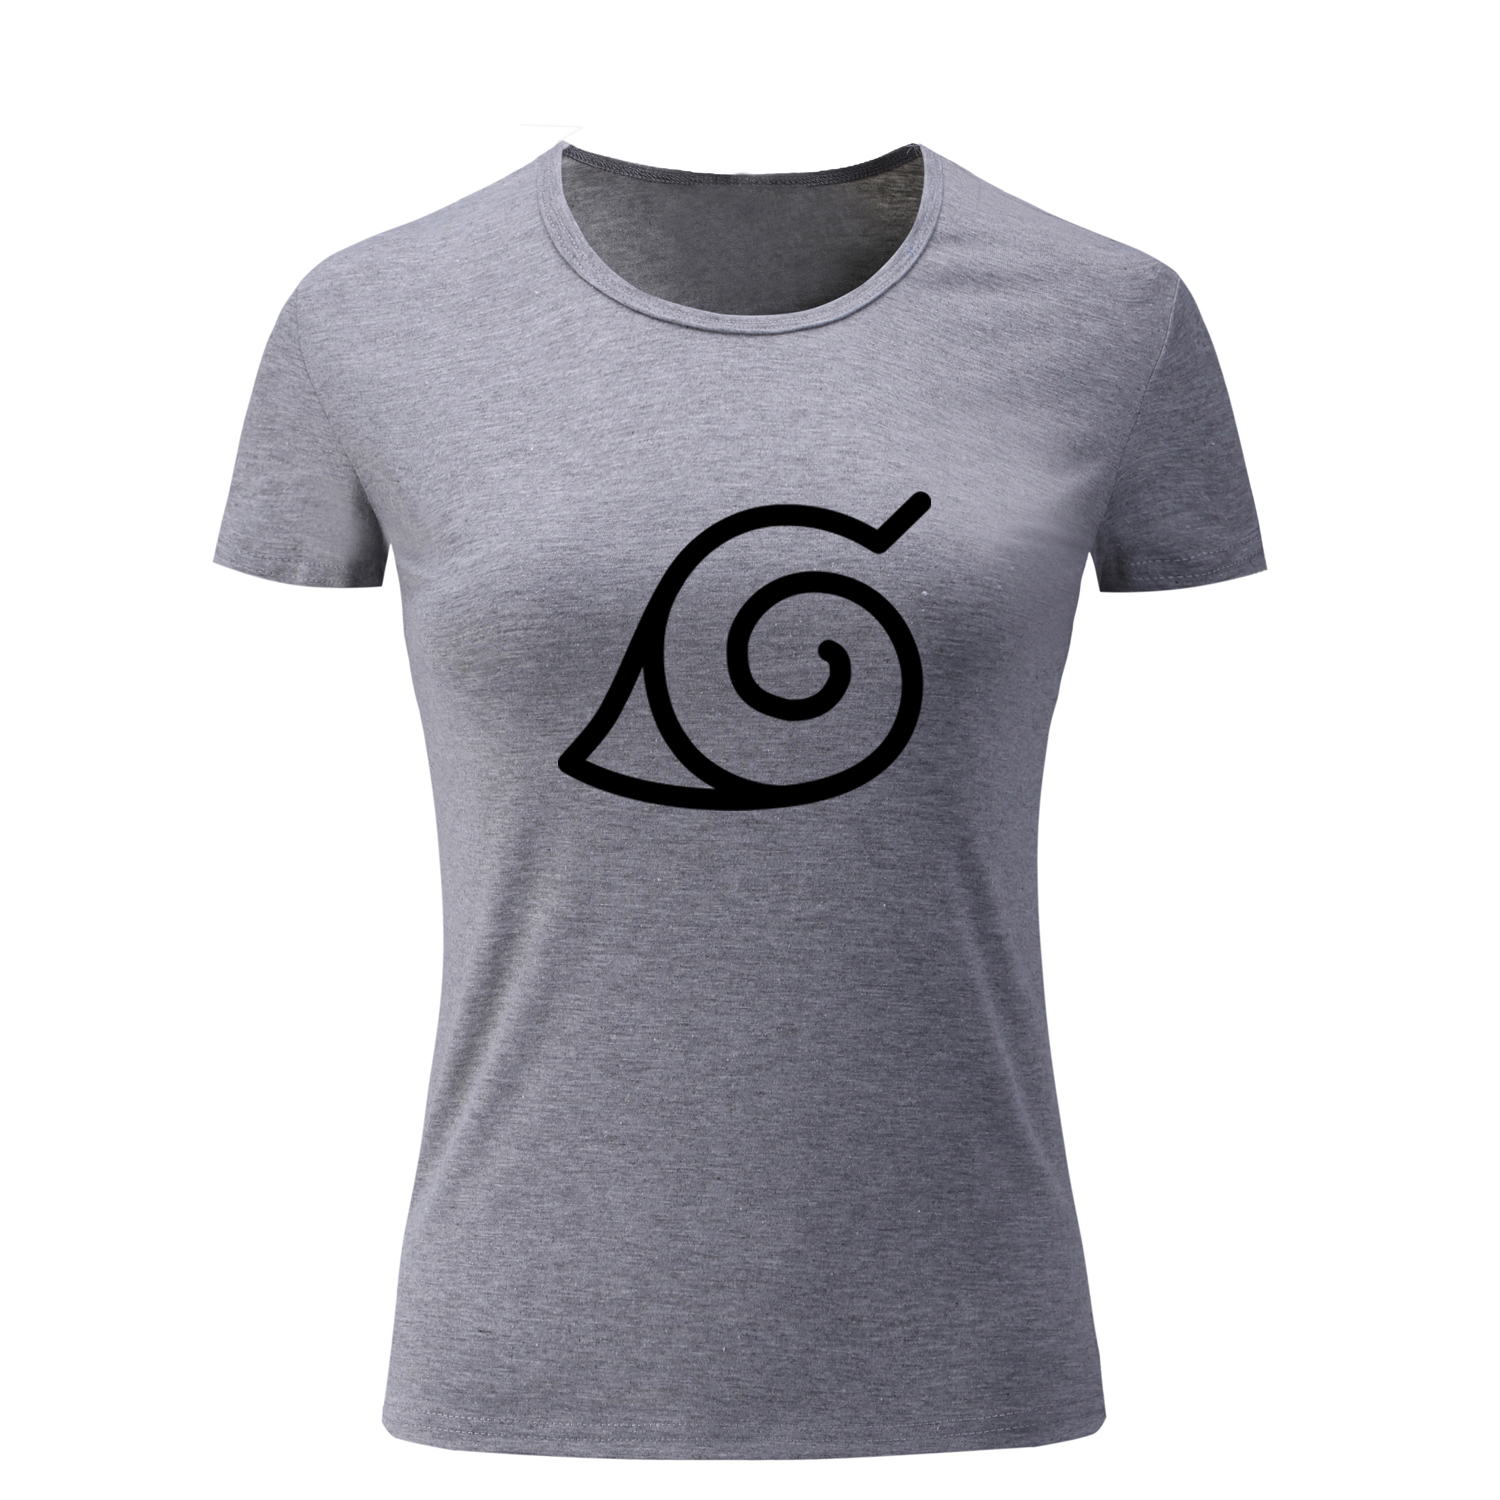 Anime One Piece Naruto Konoha Symbol T Shirt Women Tops Special Design T-shirts for Girl Lady Femme Fashion Cotton Streetwear